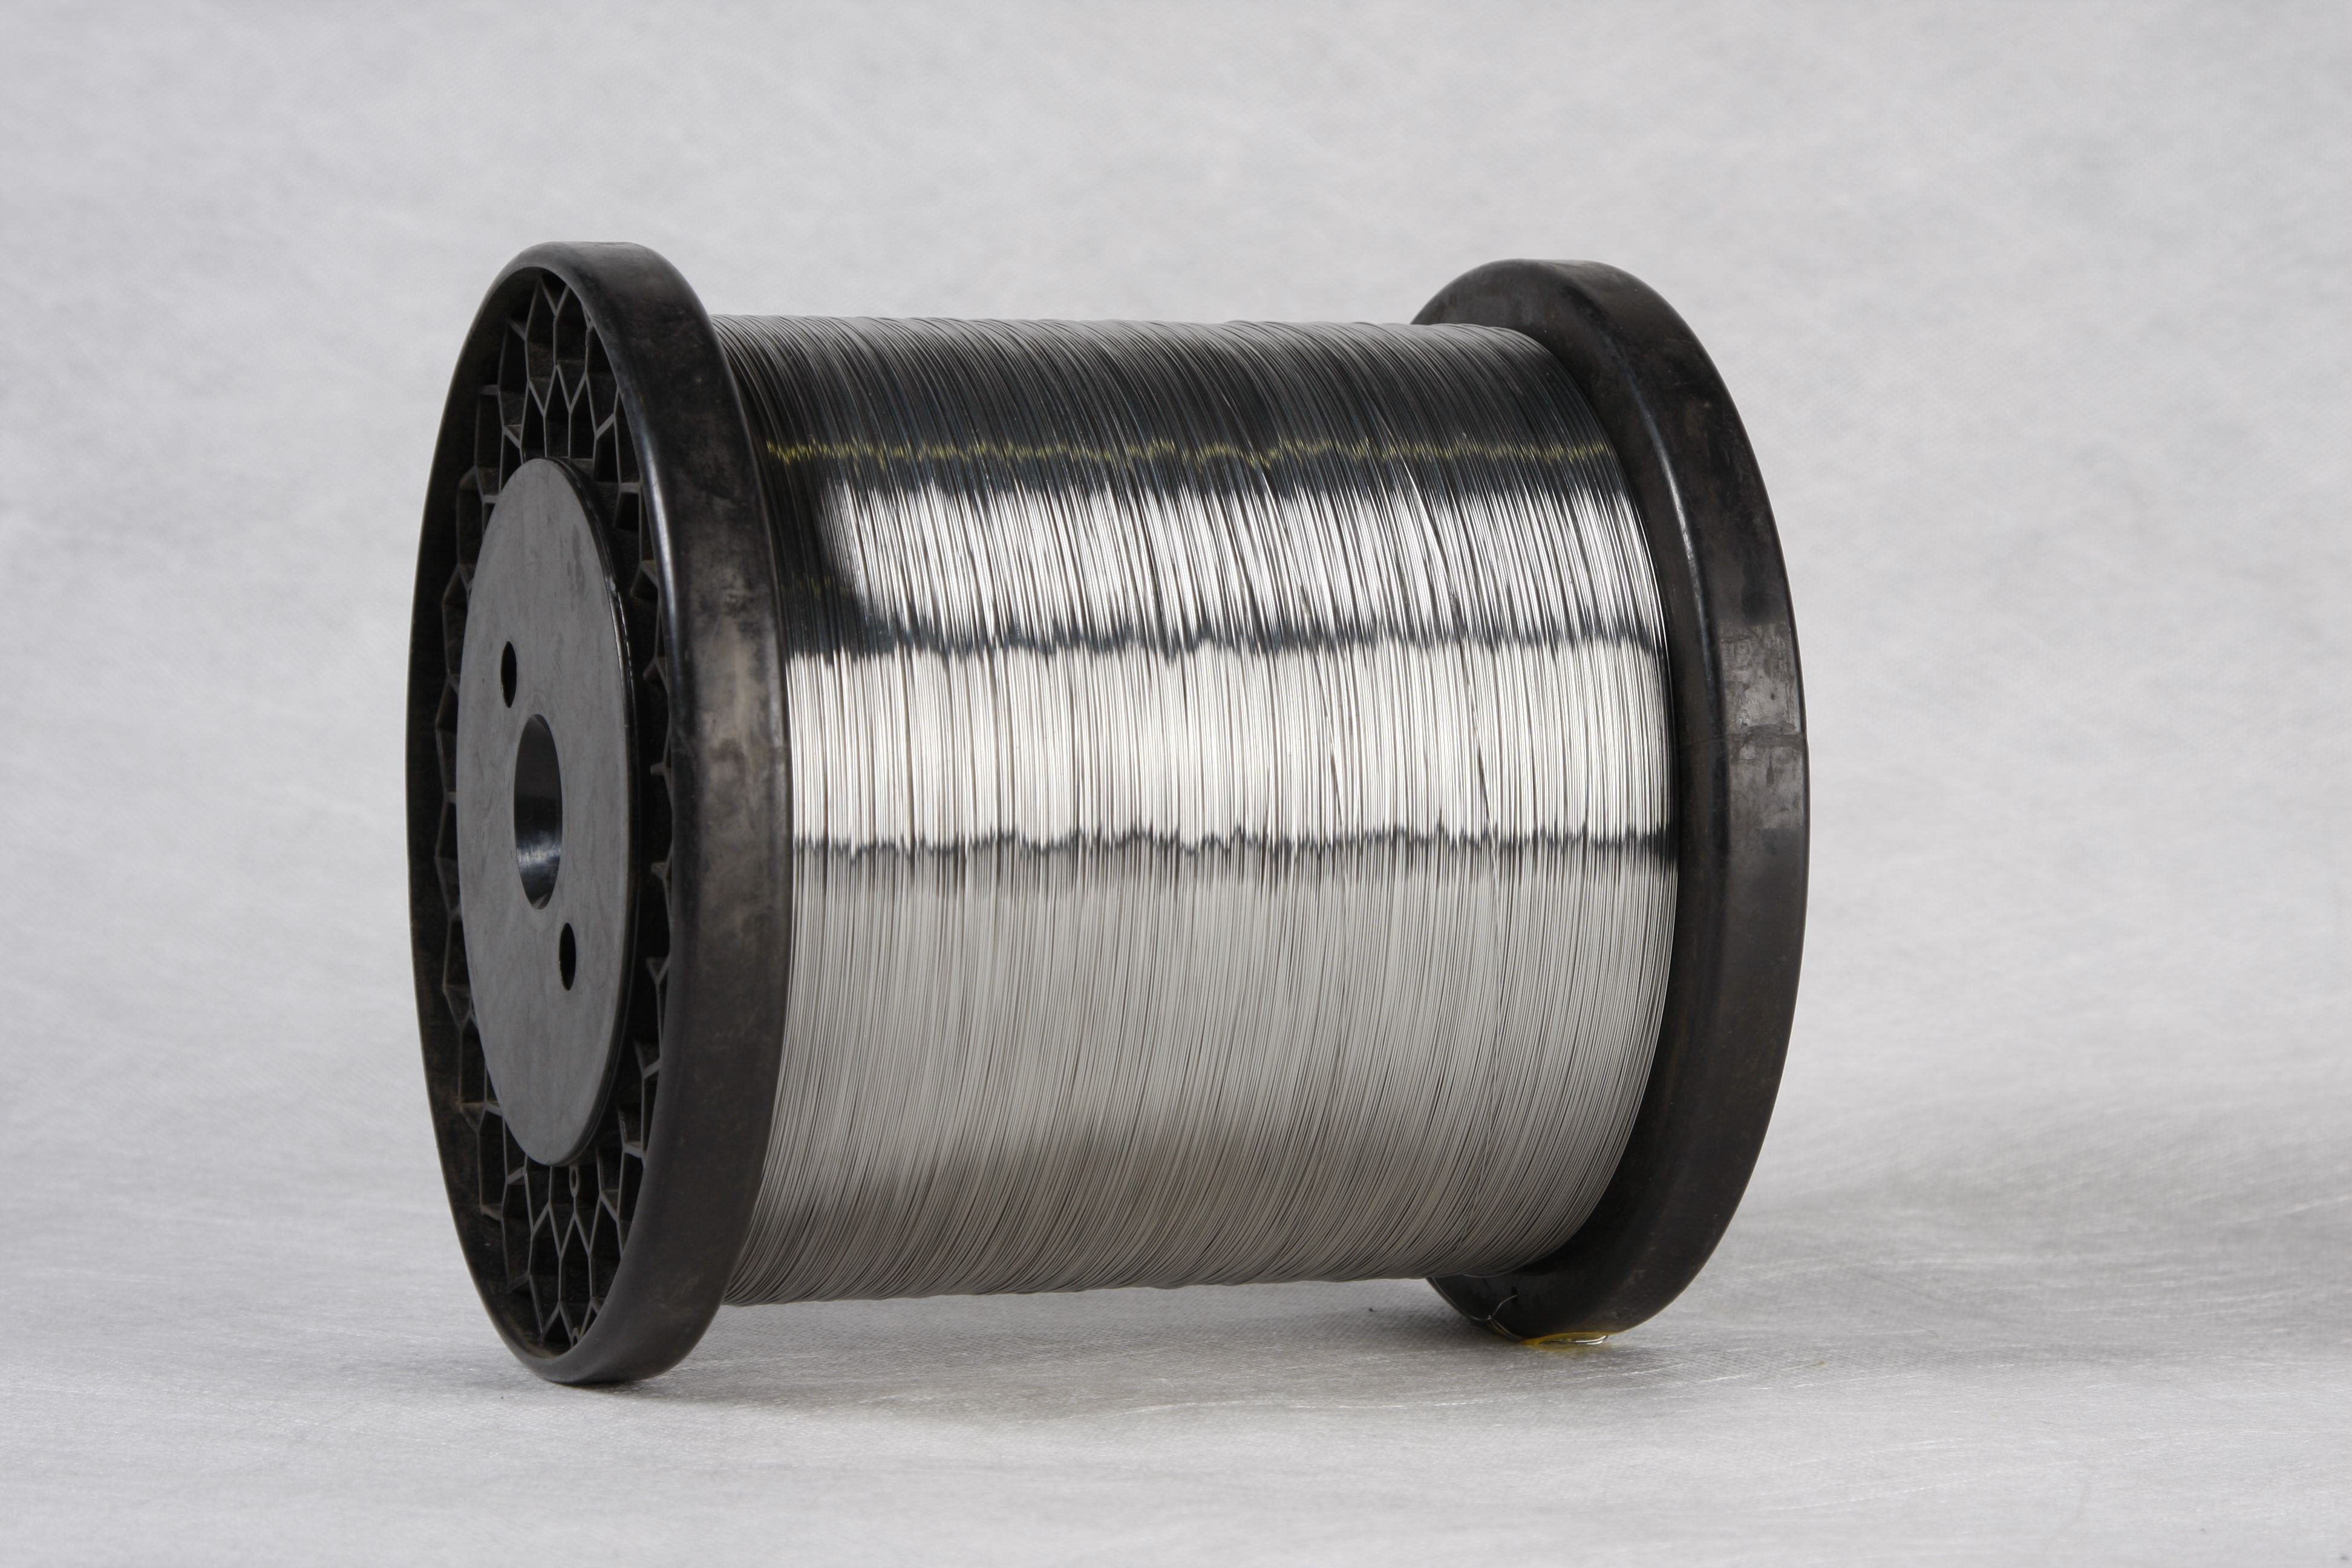 Stainless steel bright annealed tie wire DIN 200 spool